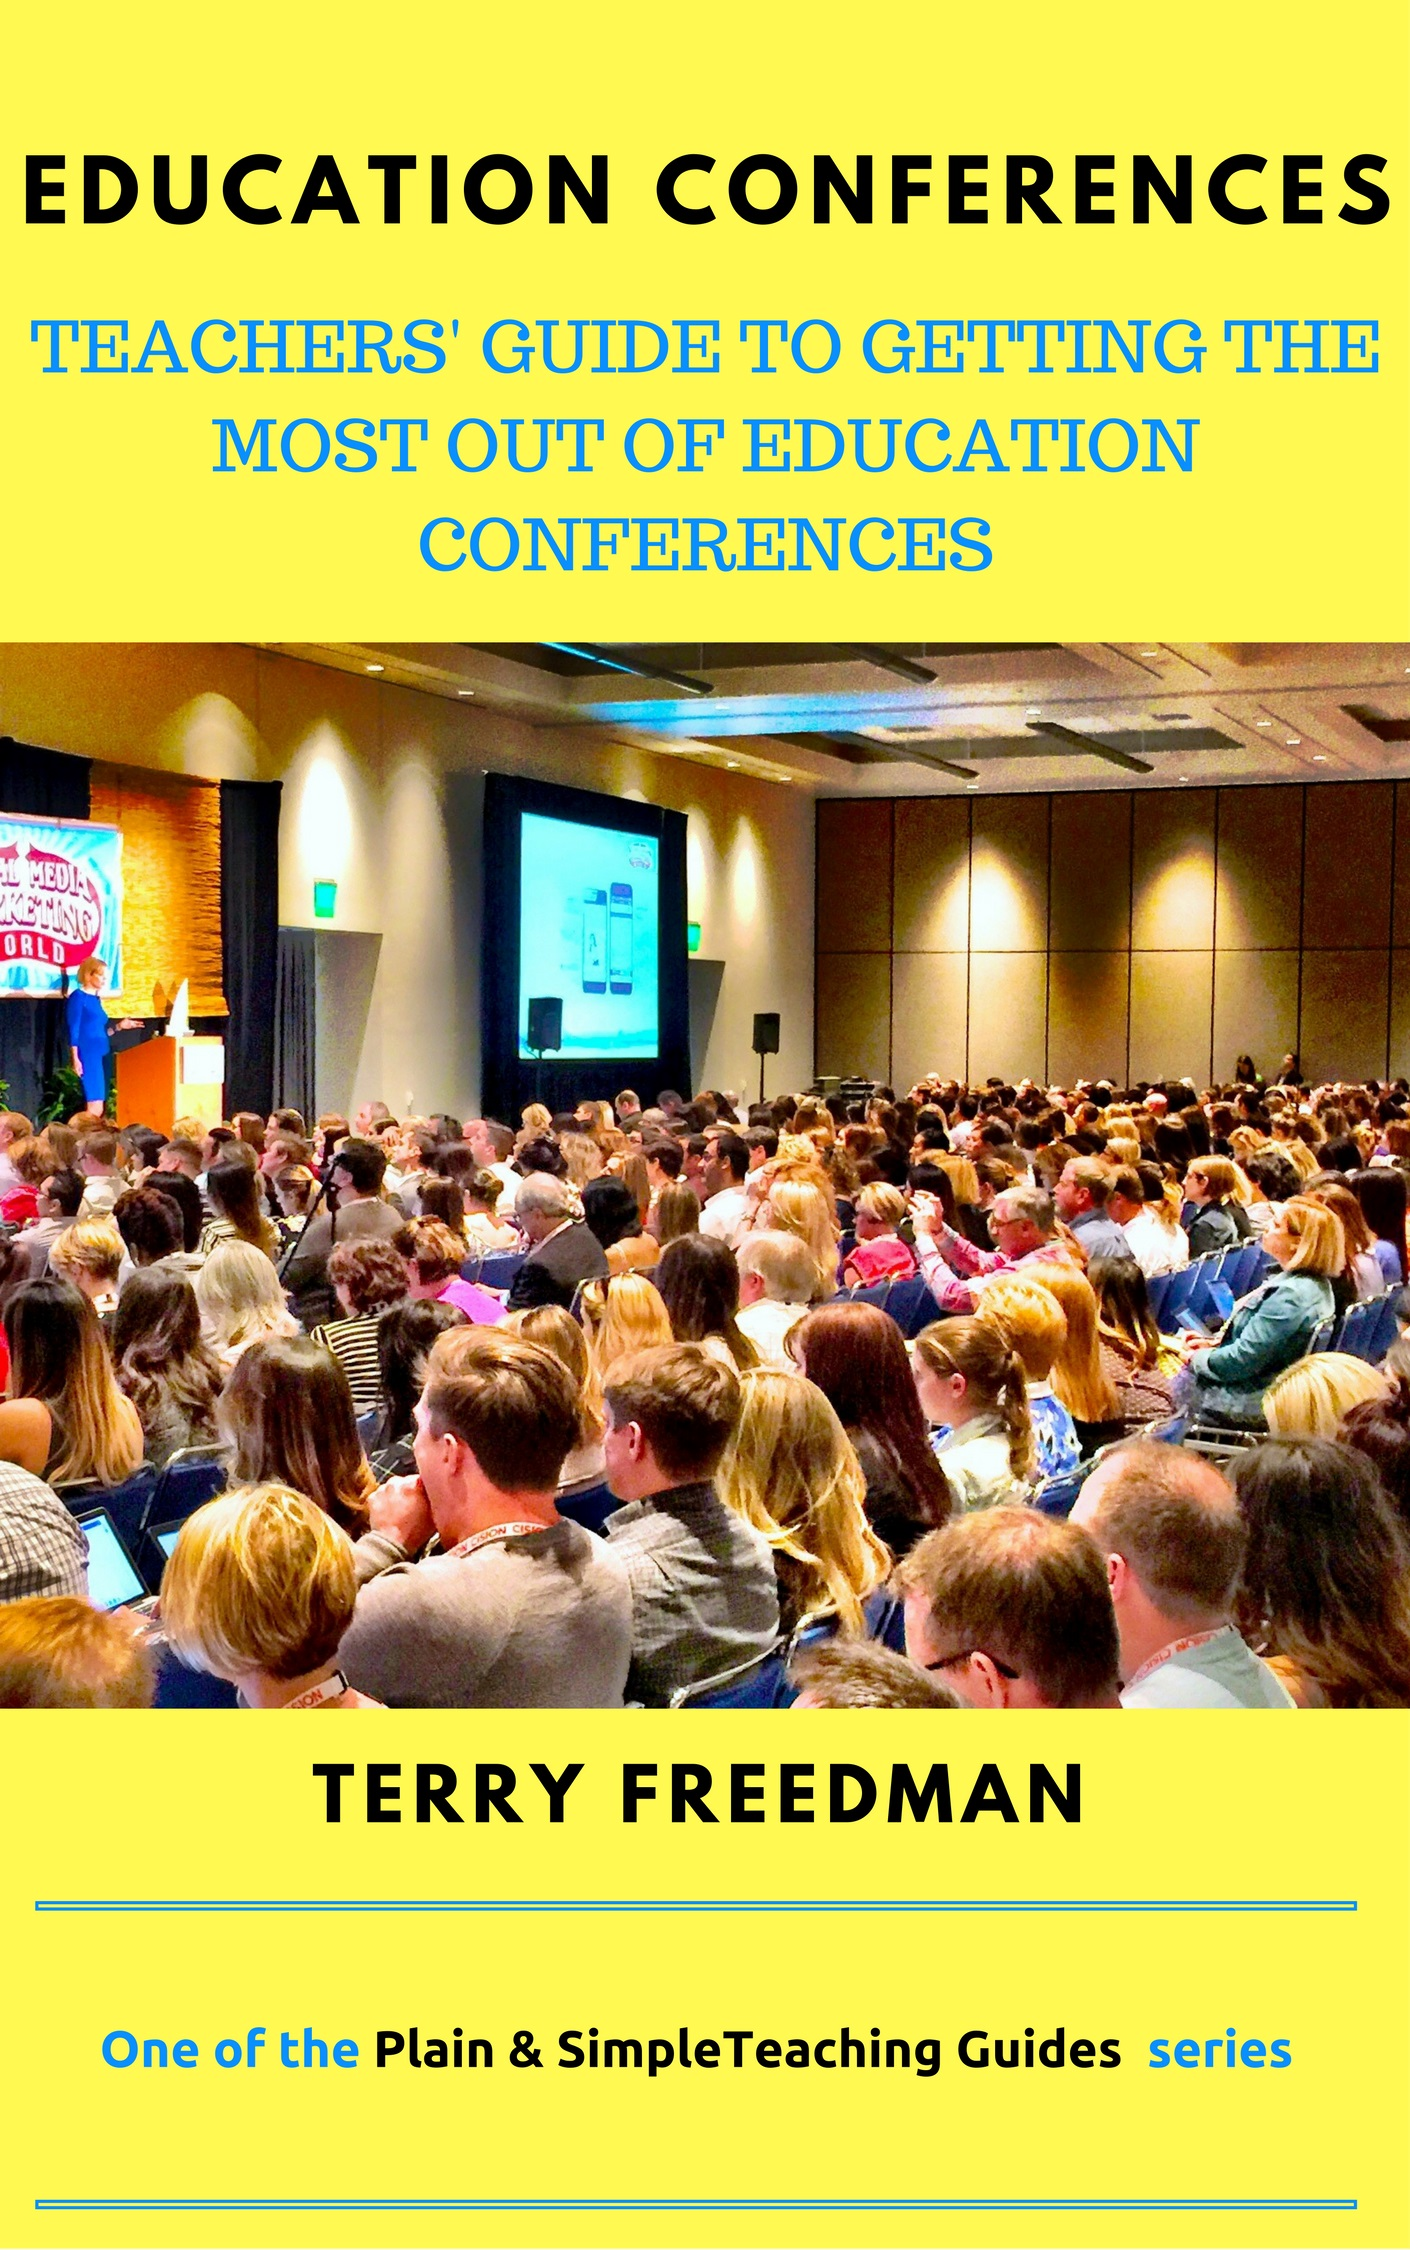 Teachers' Guide to Education Conferences.jpg